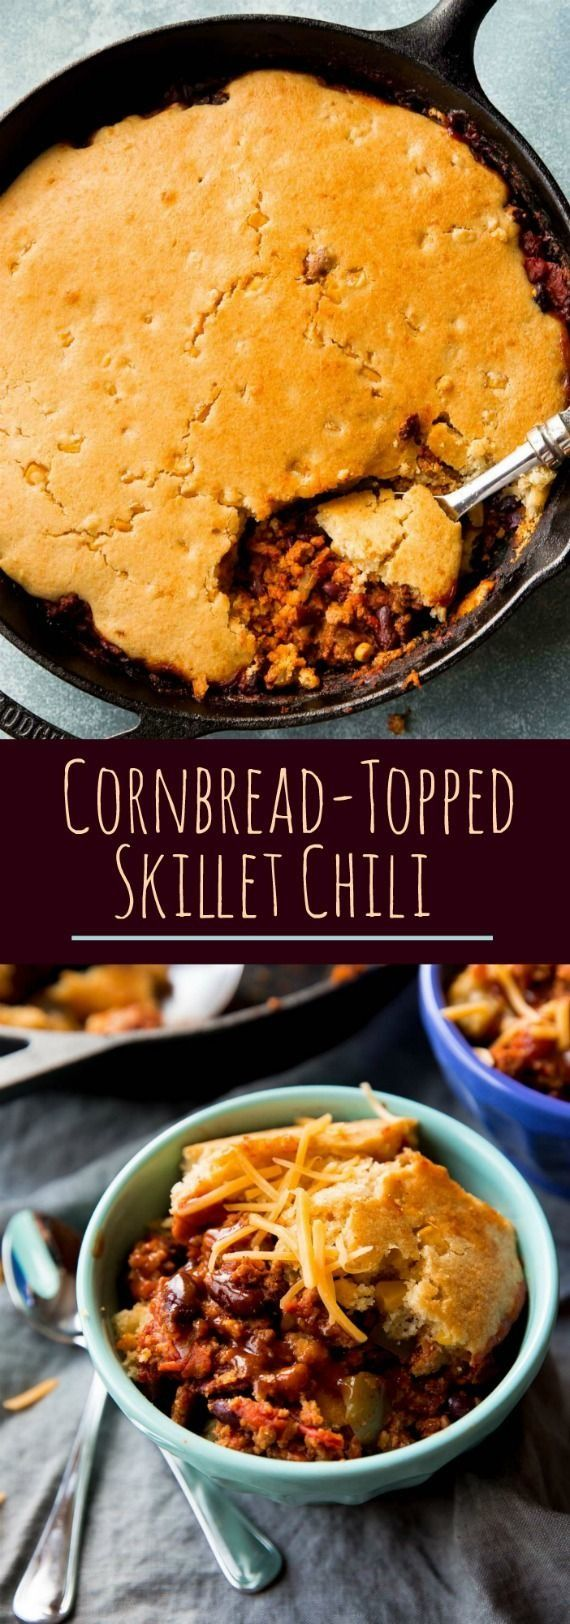 Cornbread and chili cooked in the same pan.